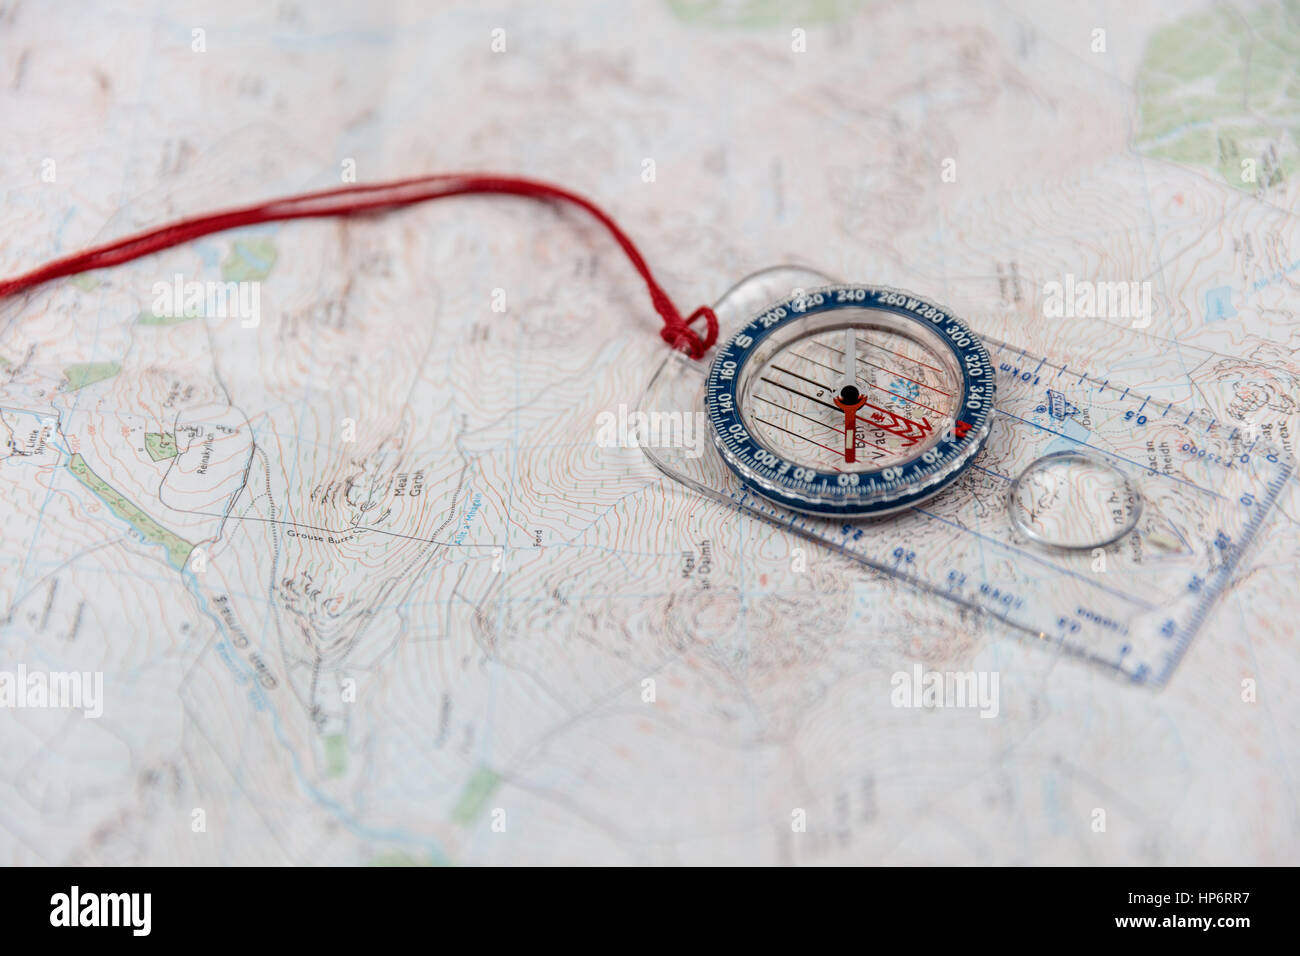 compass on a map - Stock Image